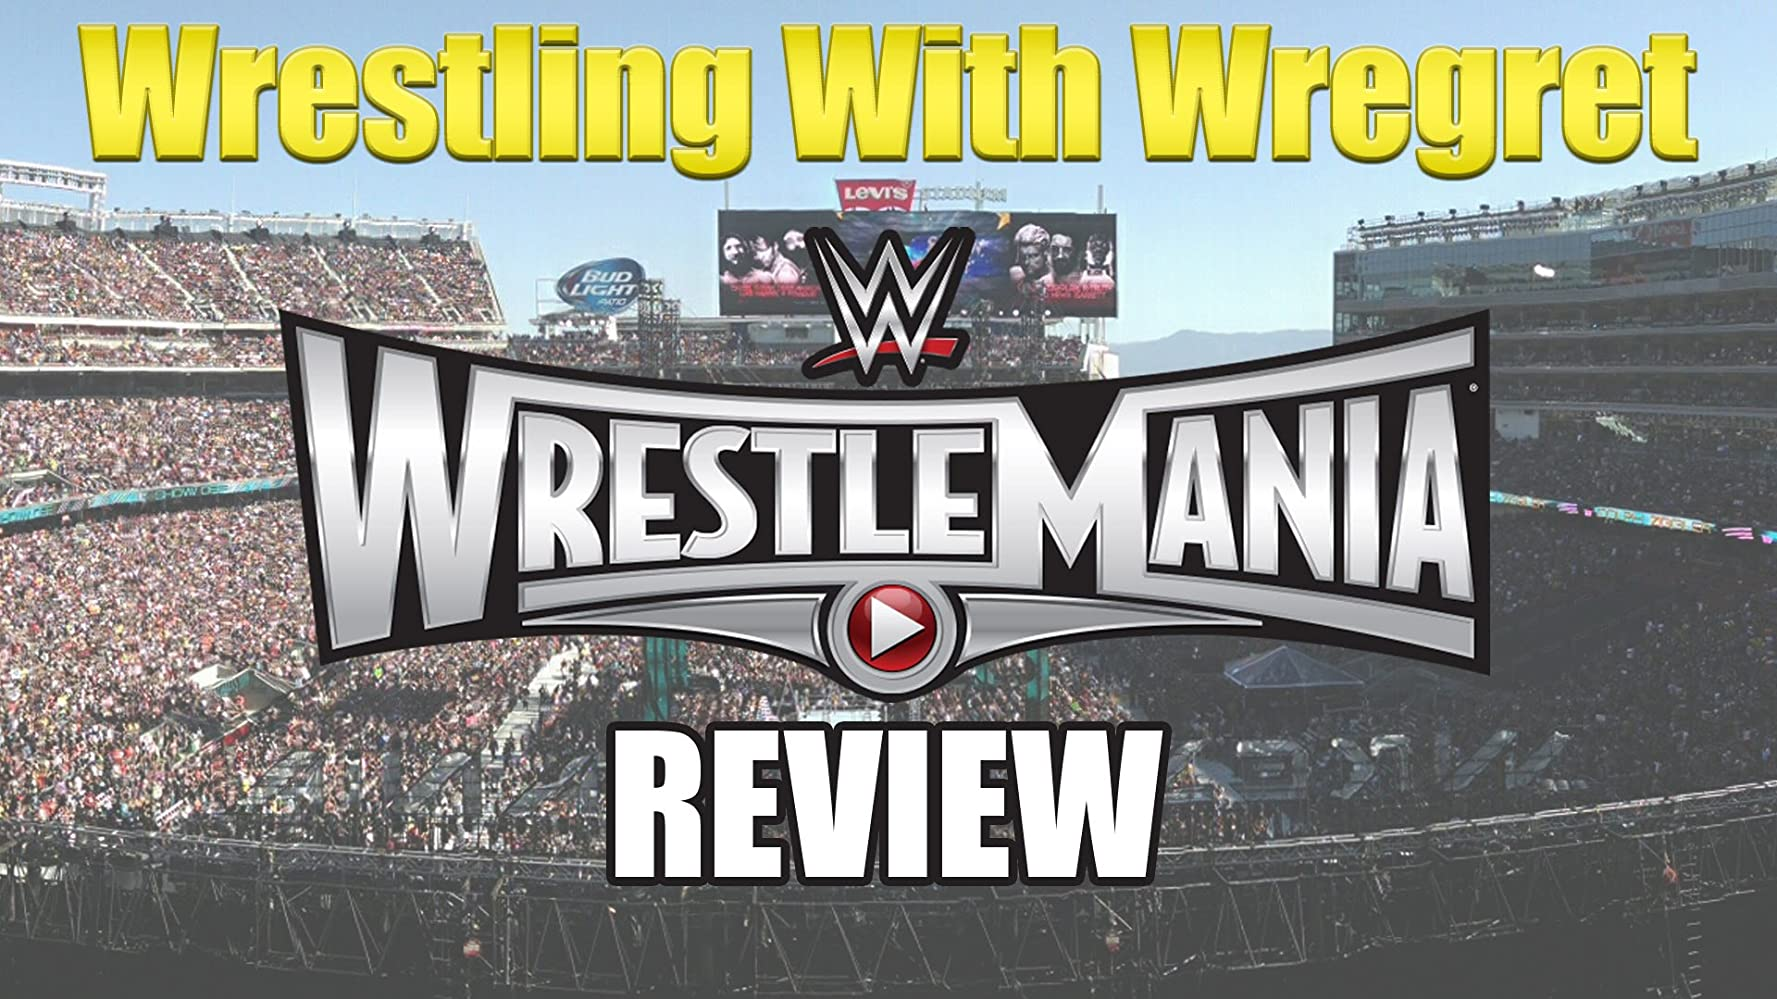 WWE Wrestlemania 31 Review (2015)